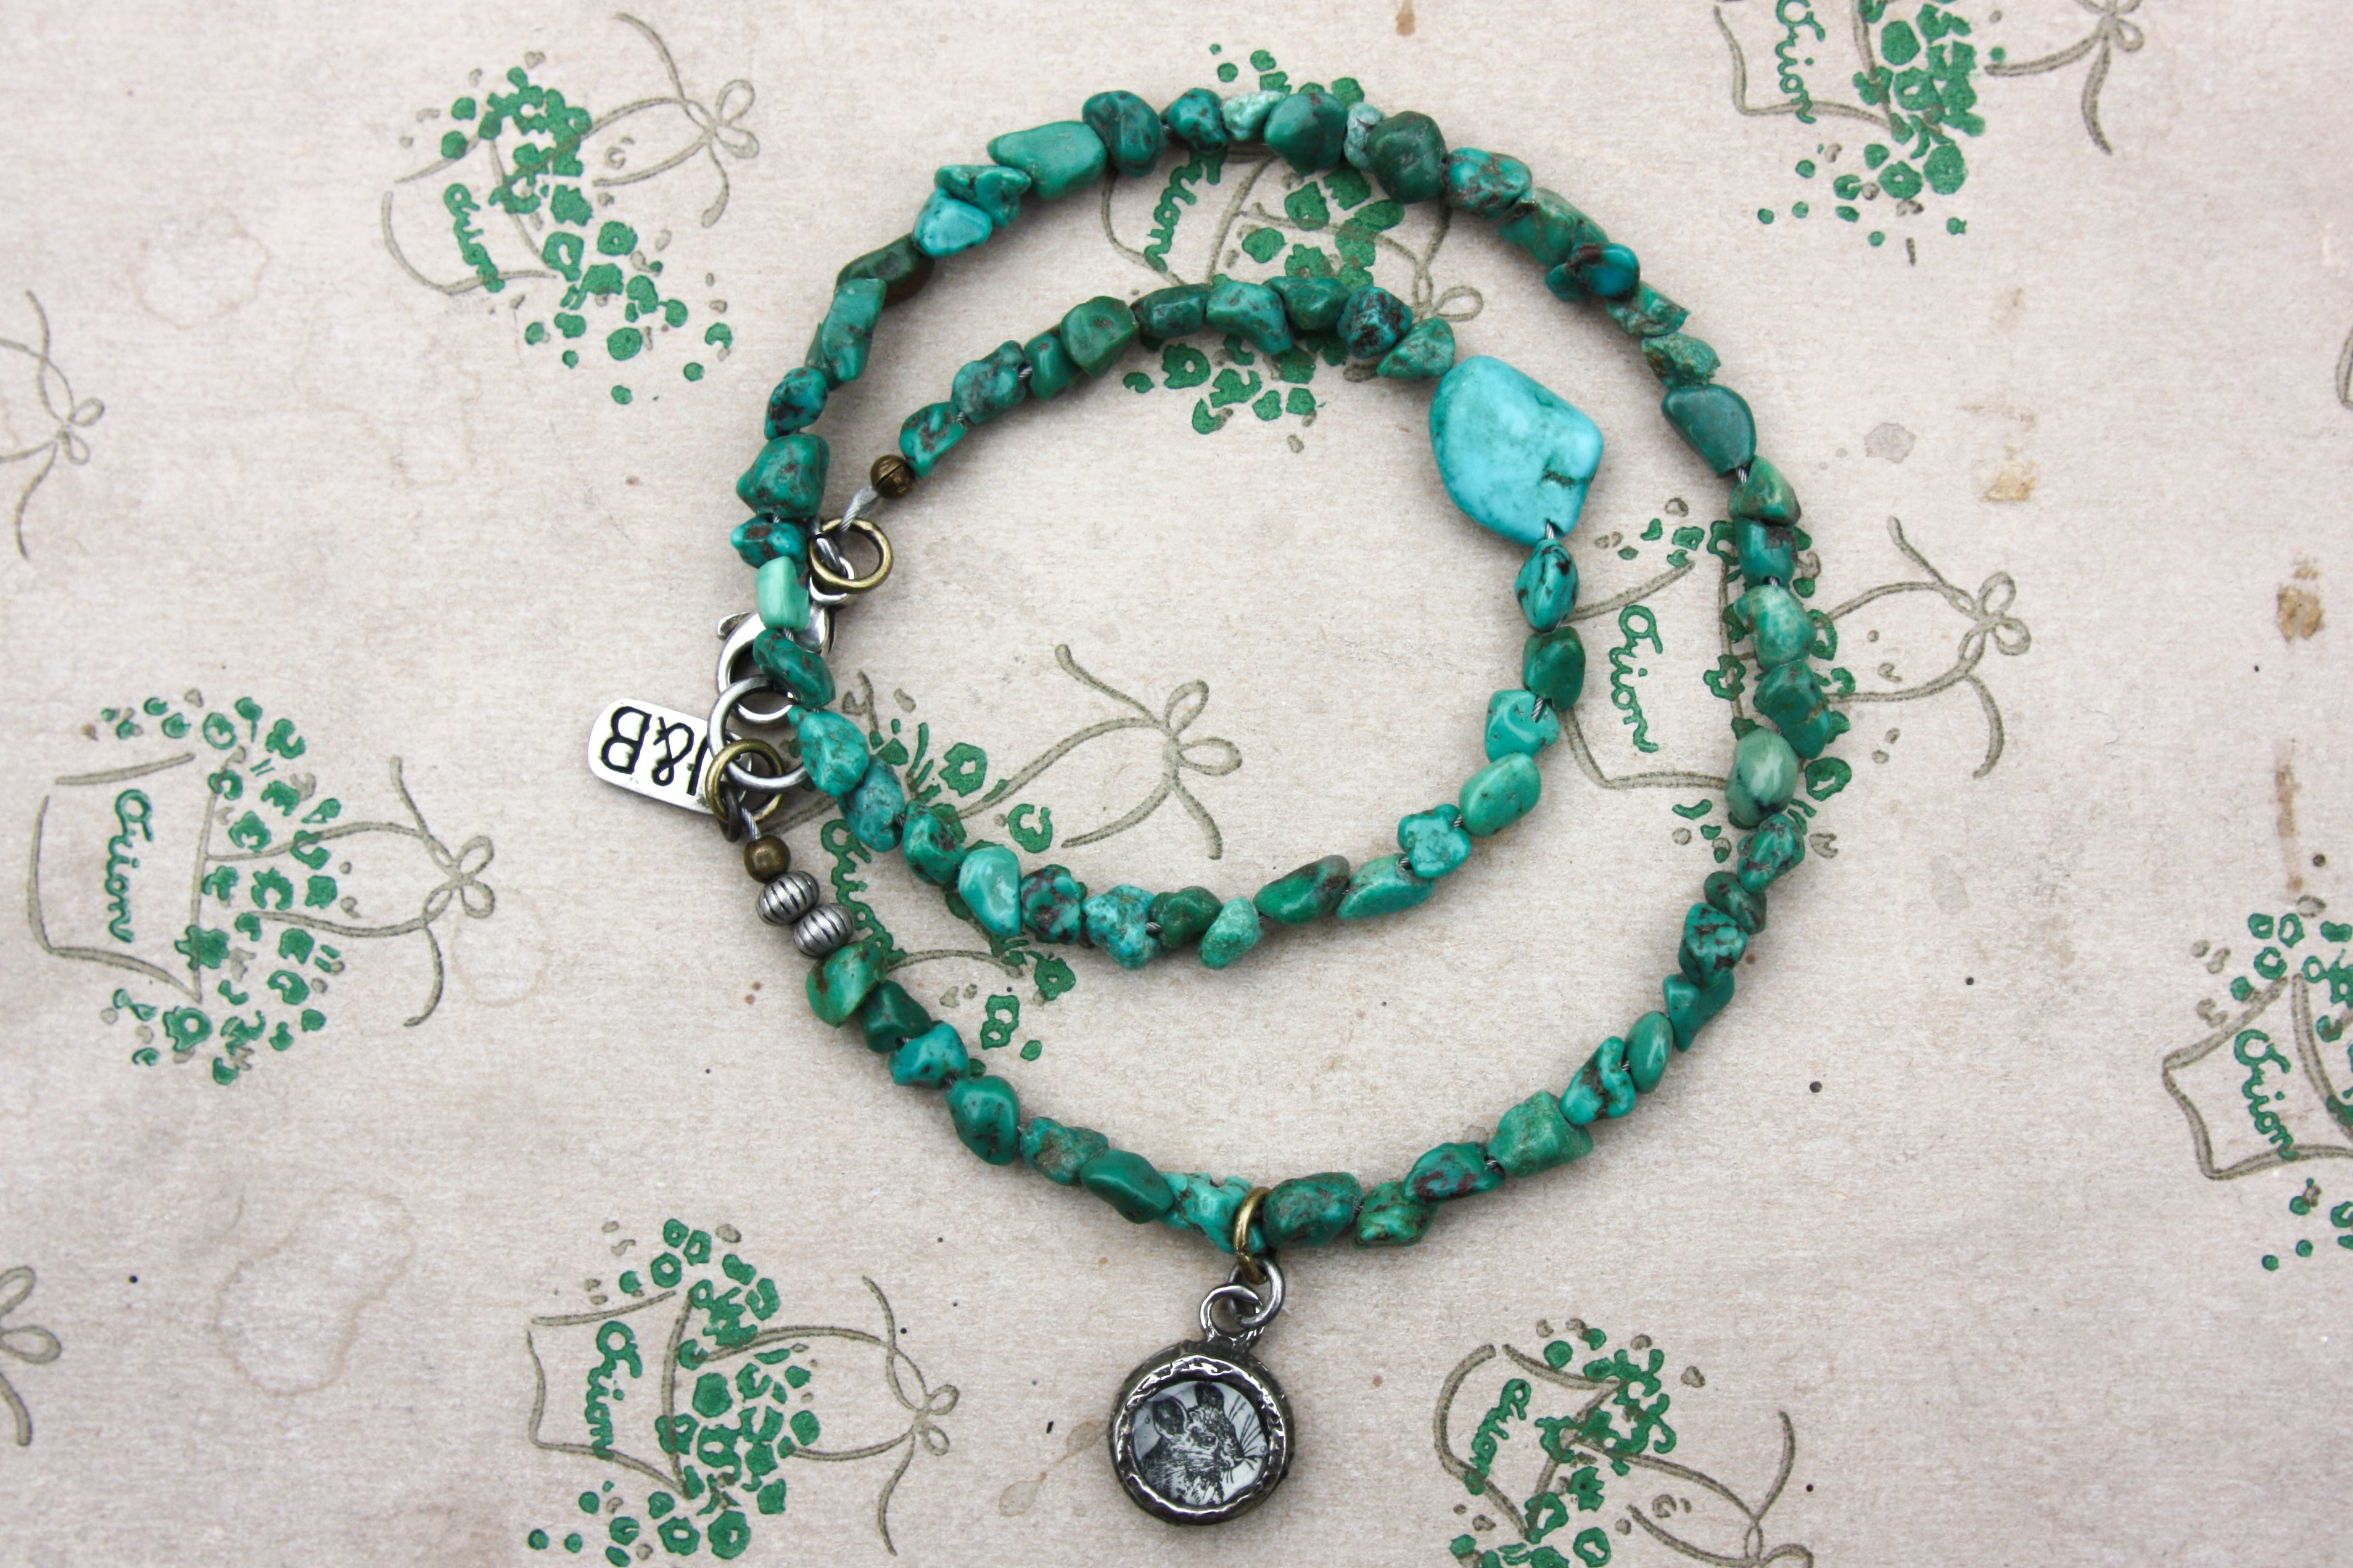 Goodluck! Bracelet made of beautifull turkoois stones and handmade medaillon with old image from Larousse.